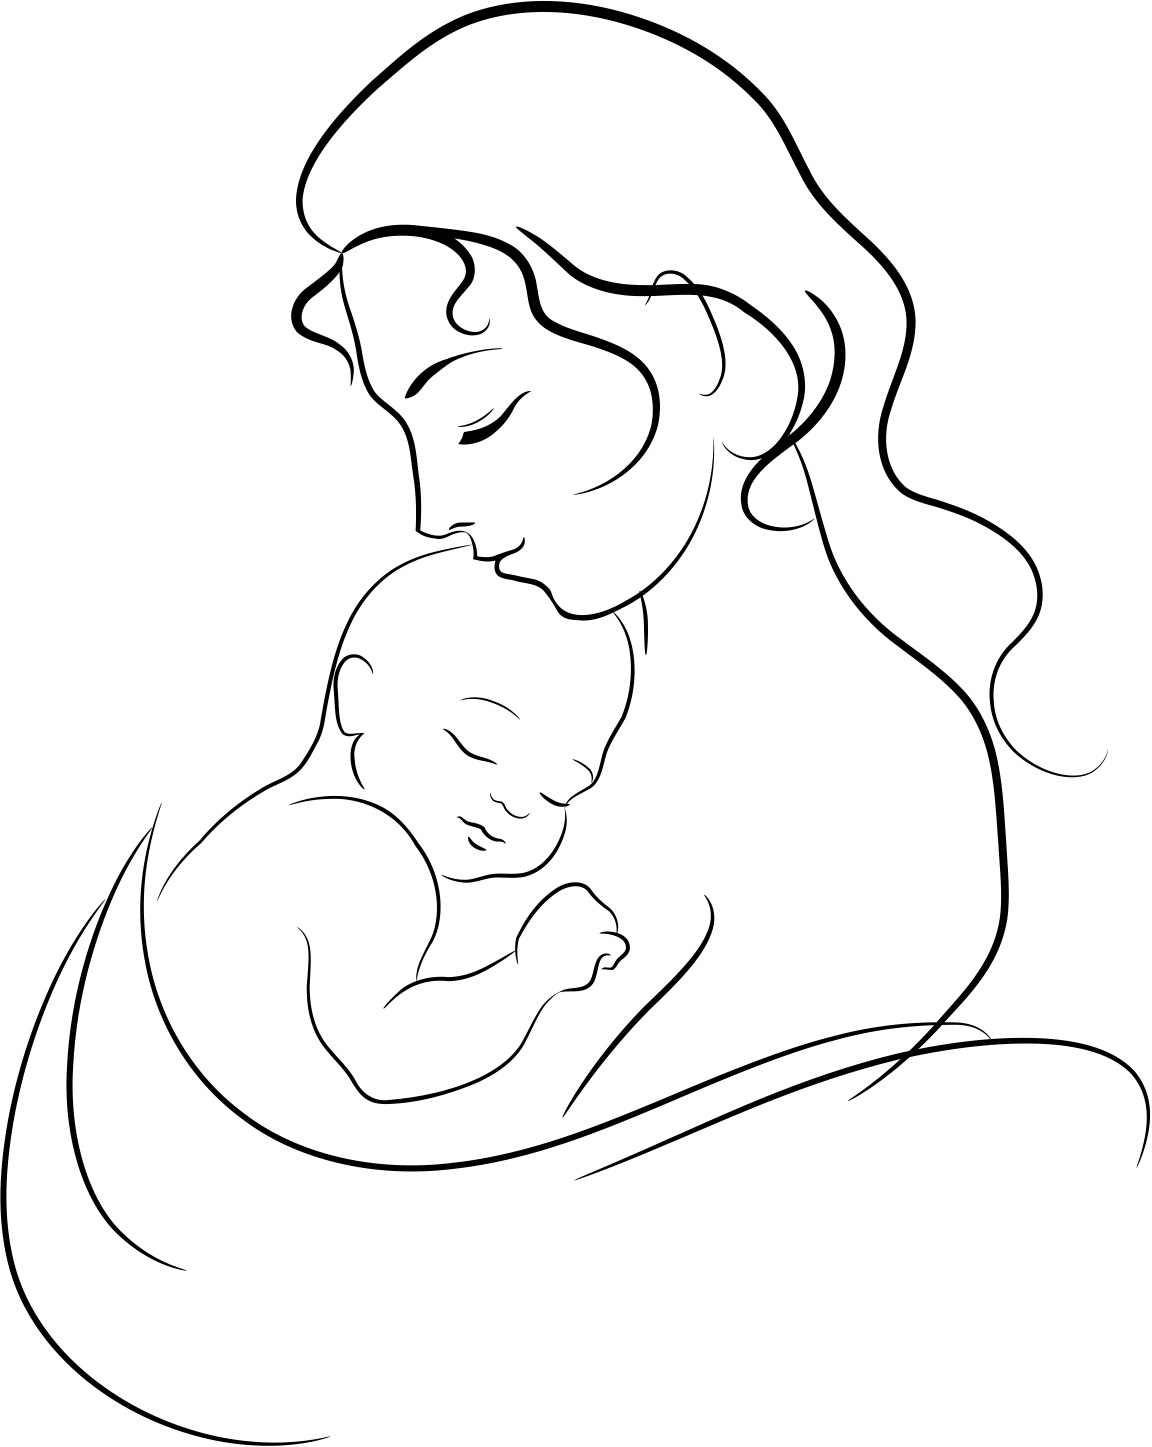 Drawing on mom with baby clipart best for Baby drawing easy